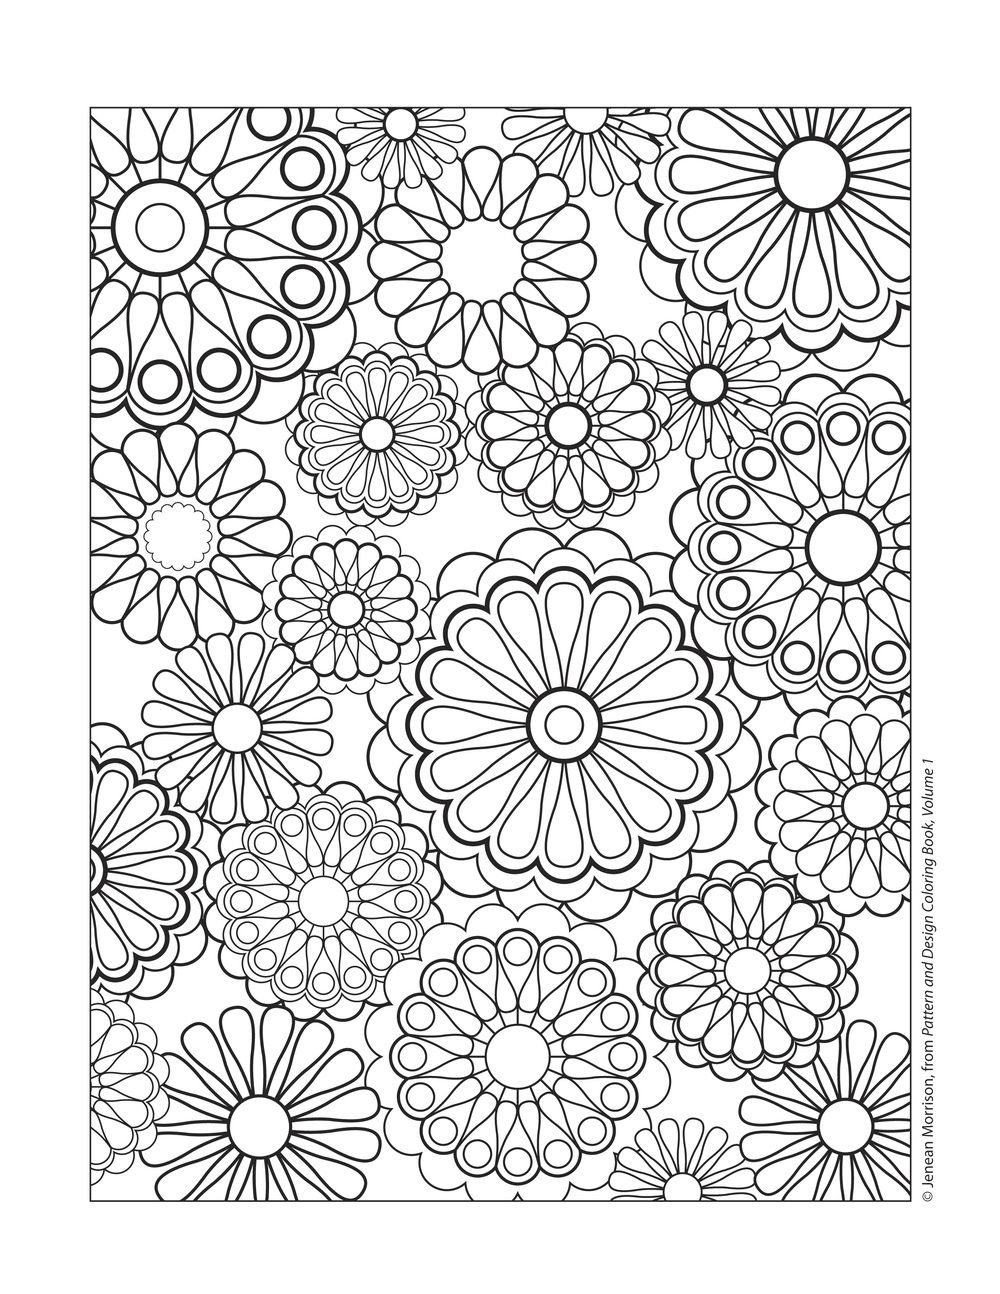 Design Patterns Coloring Pages Free Coloring Pages Coloring